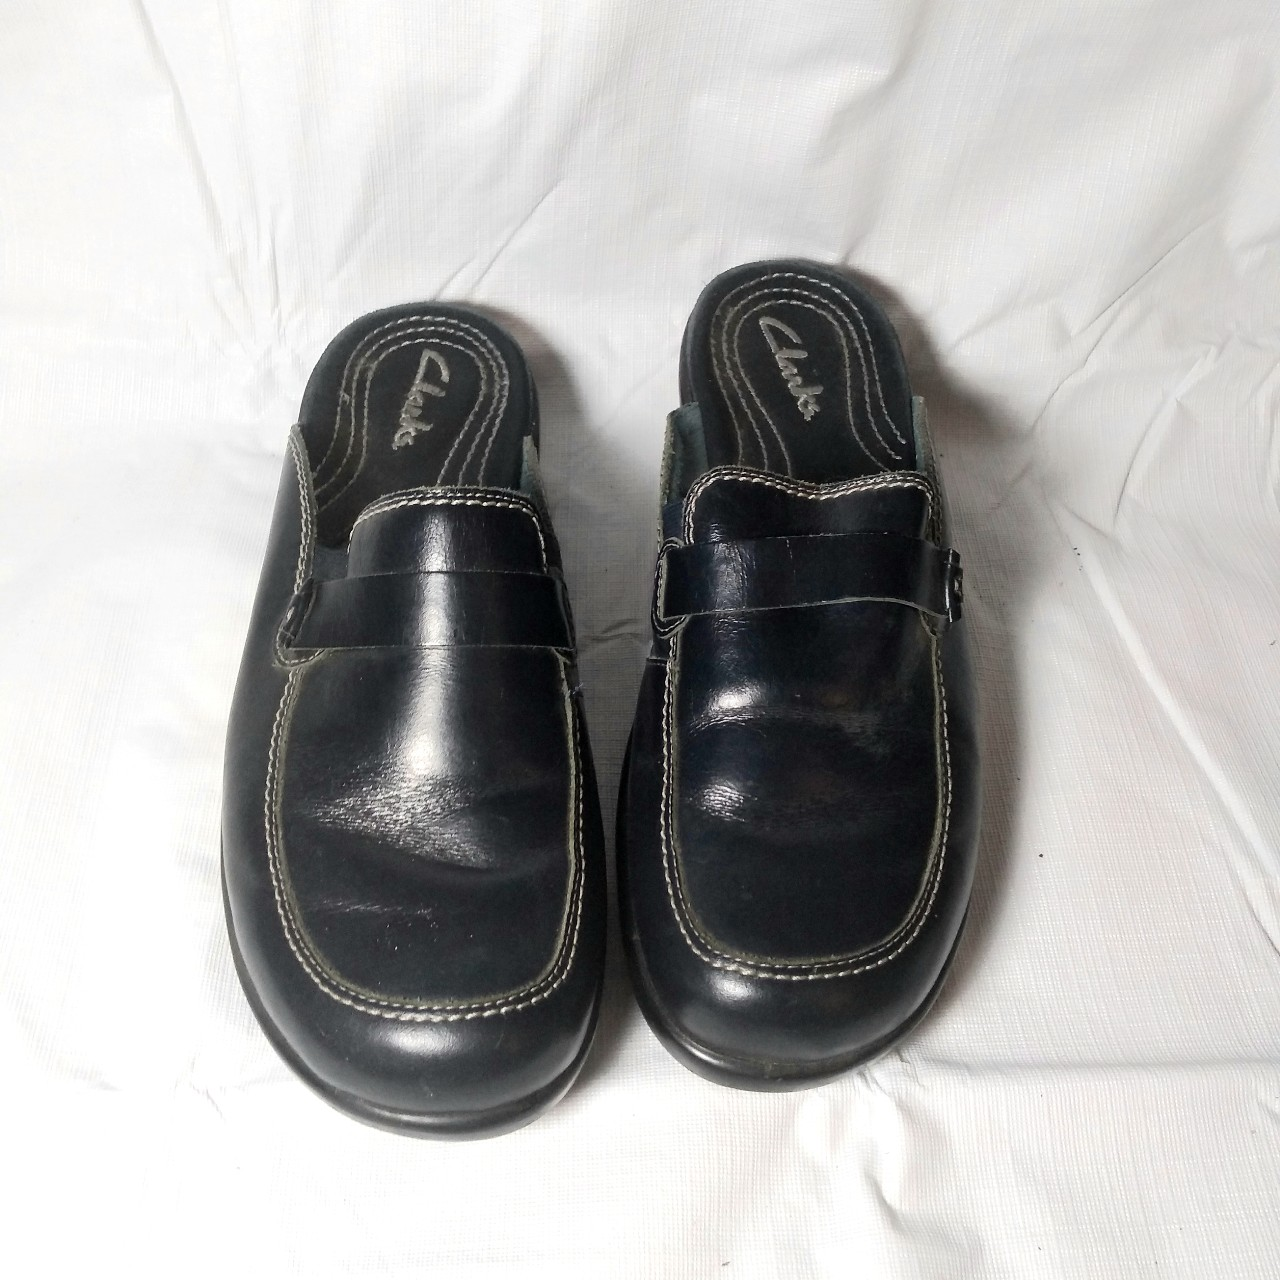 These Navy blue leather mules or clogs